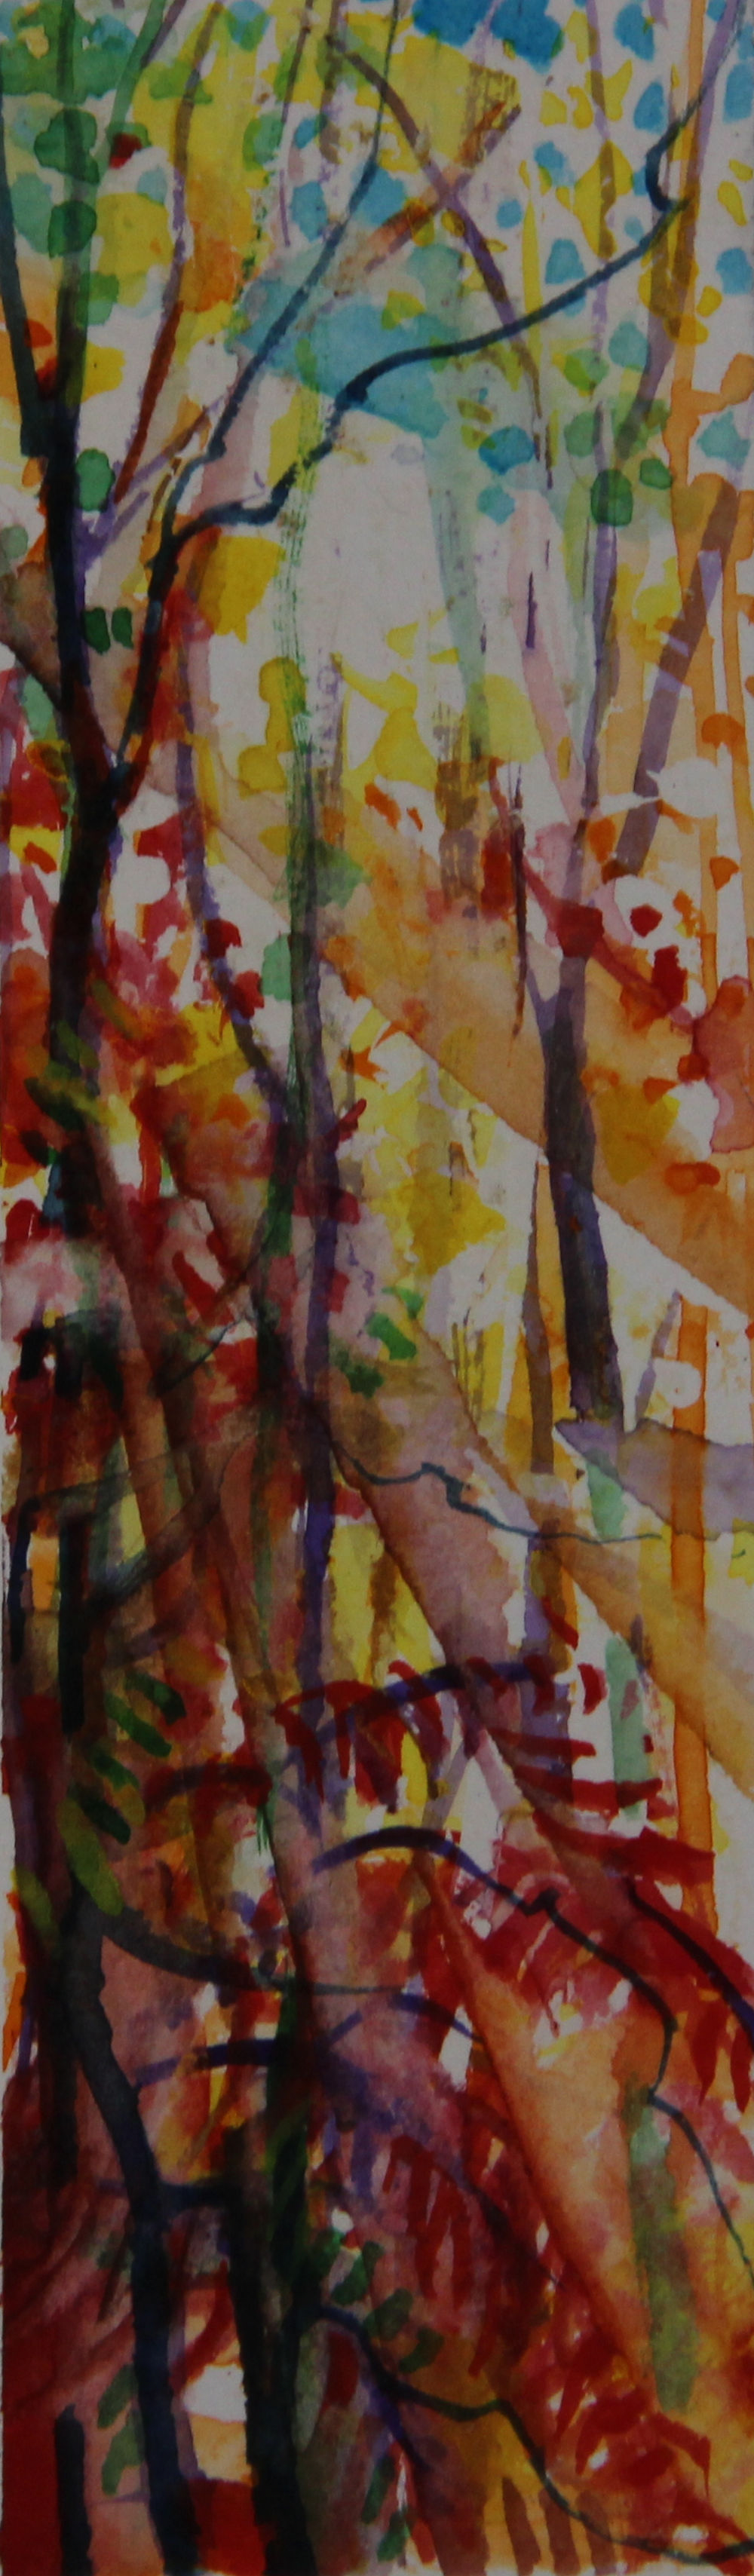 Autumn Forest Scene 02, about 6H x 2W inches watercolors on 140 lb cold pressed